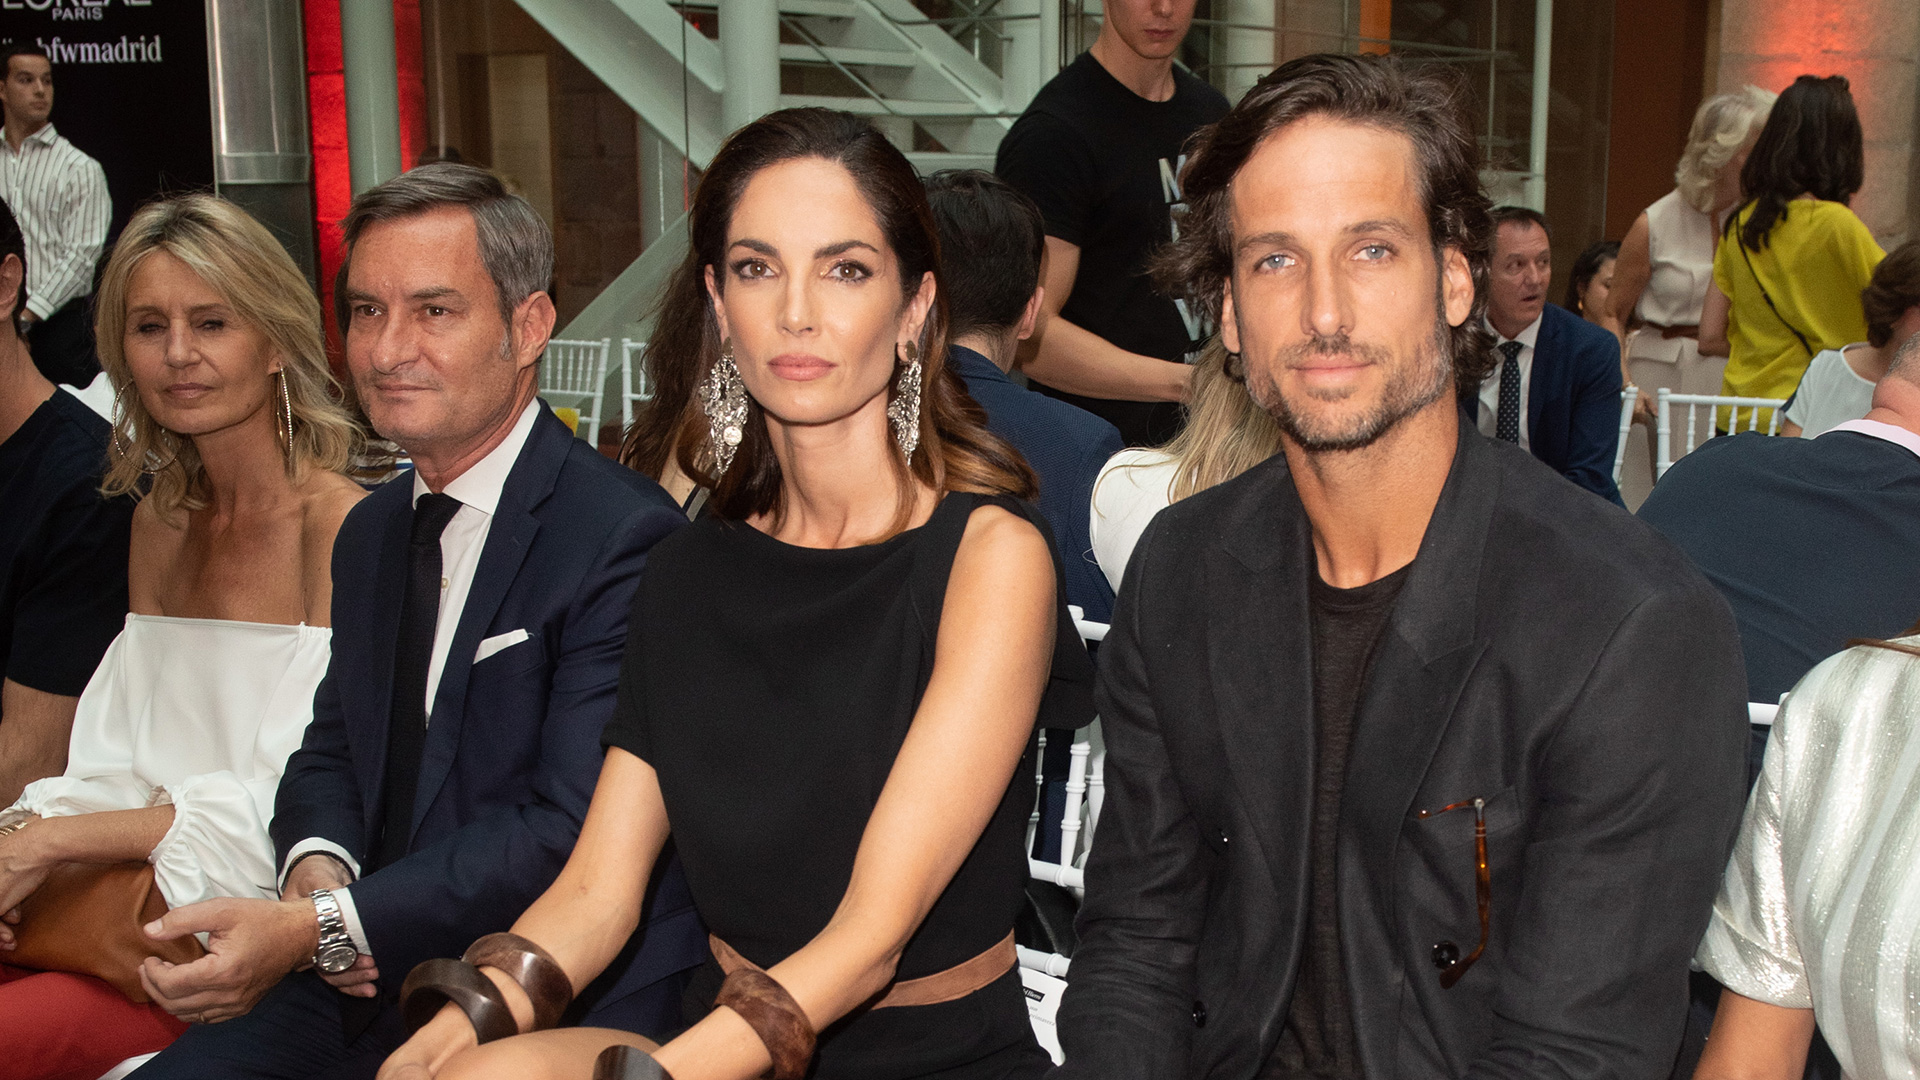 Eugenia Silva and Feliciano López attend Pedro del Hierro fashion show during the Mercedes Benz Fashion Week Spring/Summer 2020, 9 July 2019 in Madrid, Spain